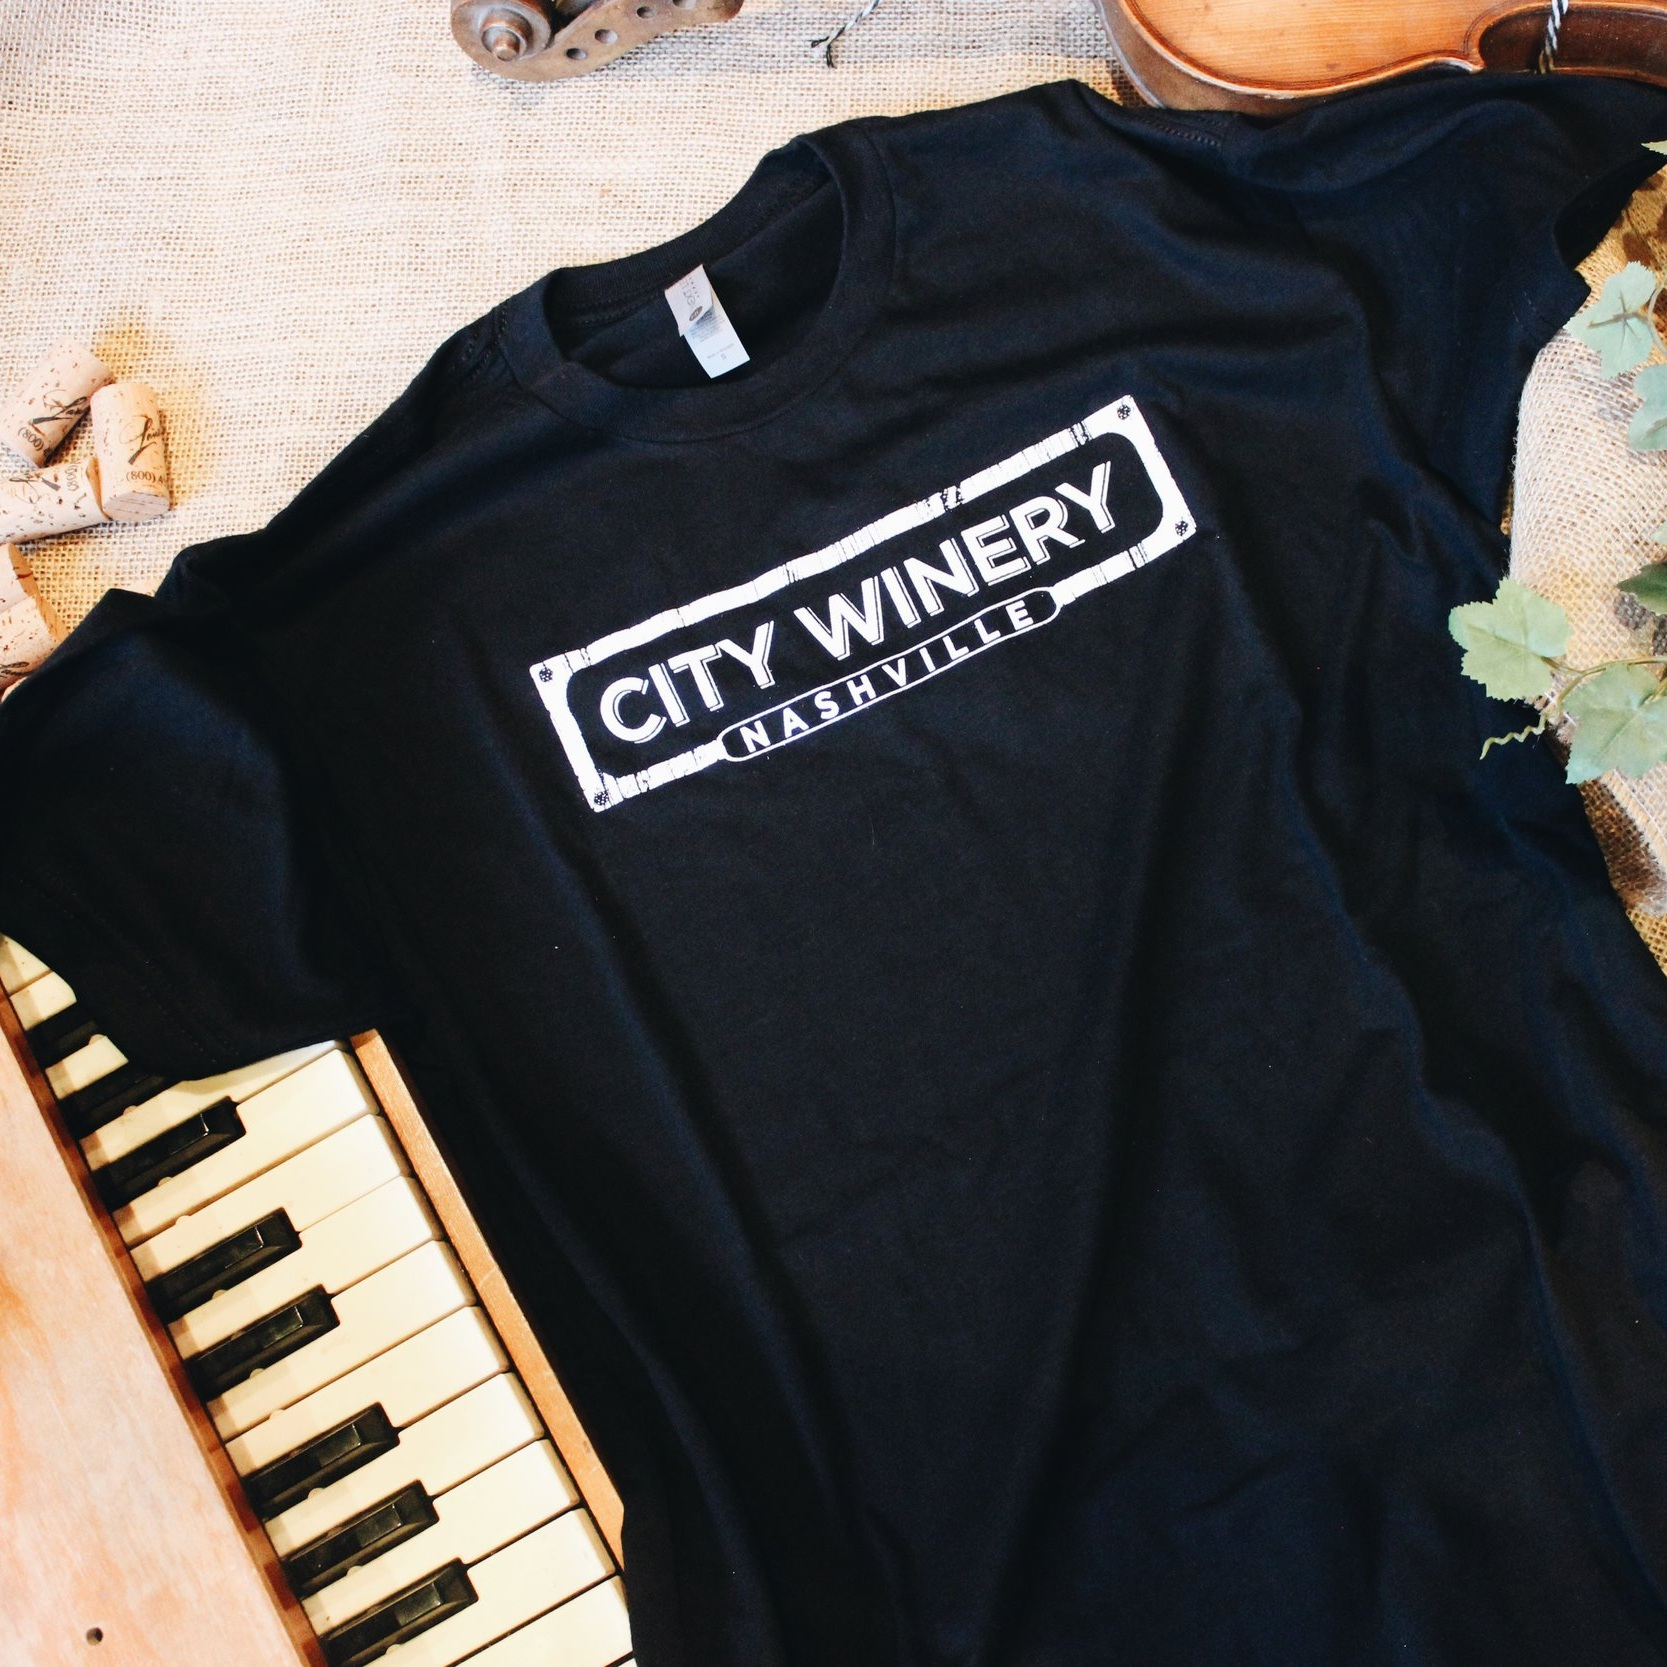 Nashville Logo Black T-Shirt - Rep your favorite location of the City Winery brand with this comfortable, relaxed cotton t-shirt with a rounded neckline and short sleeves. Fits true to adult sizing.